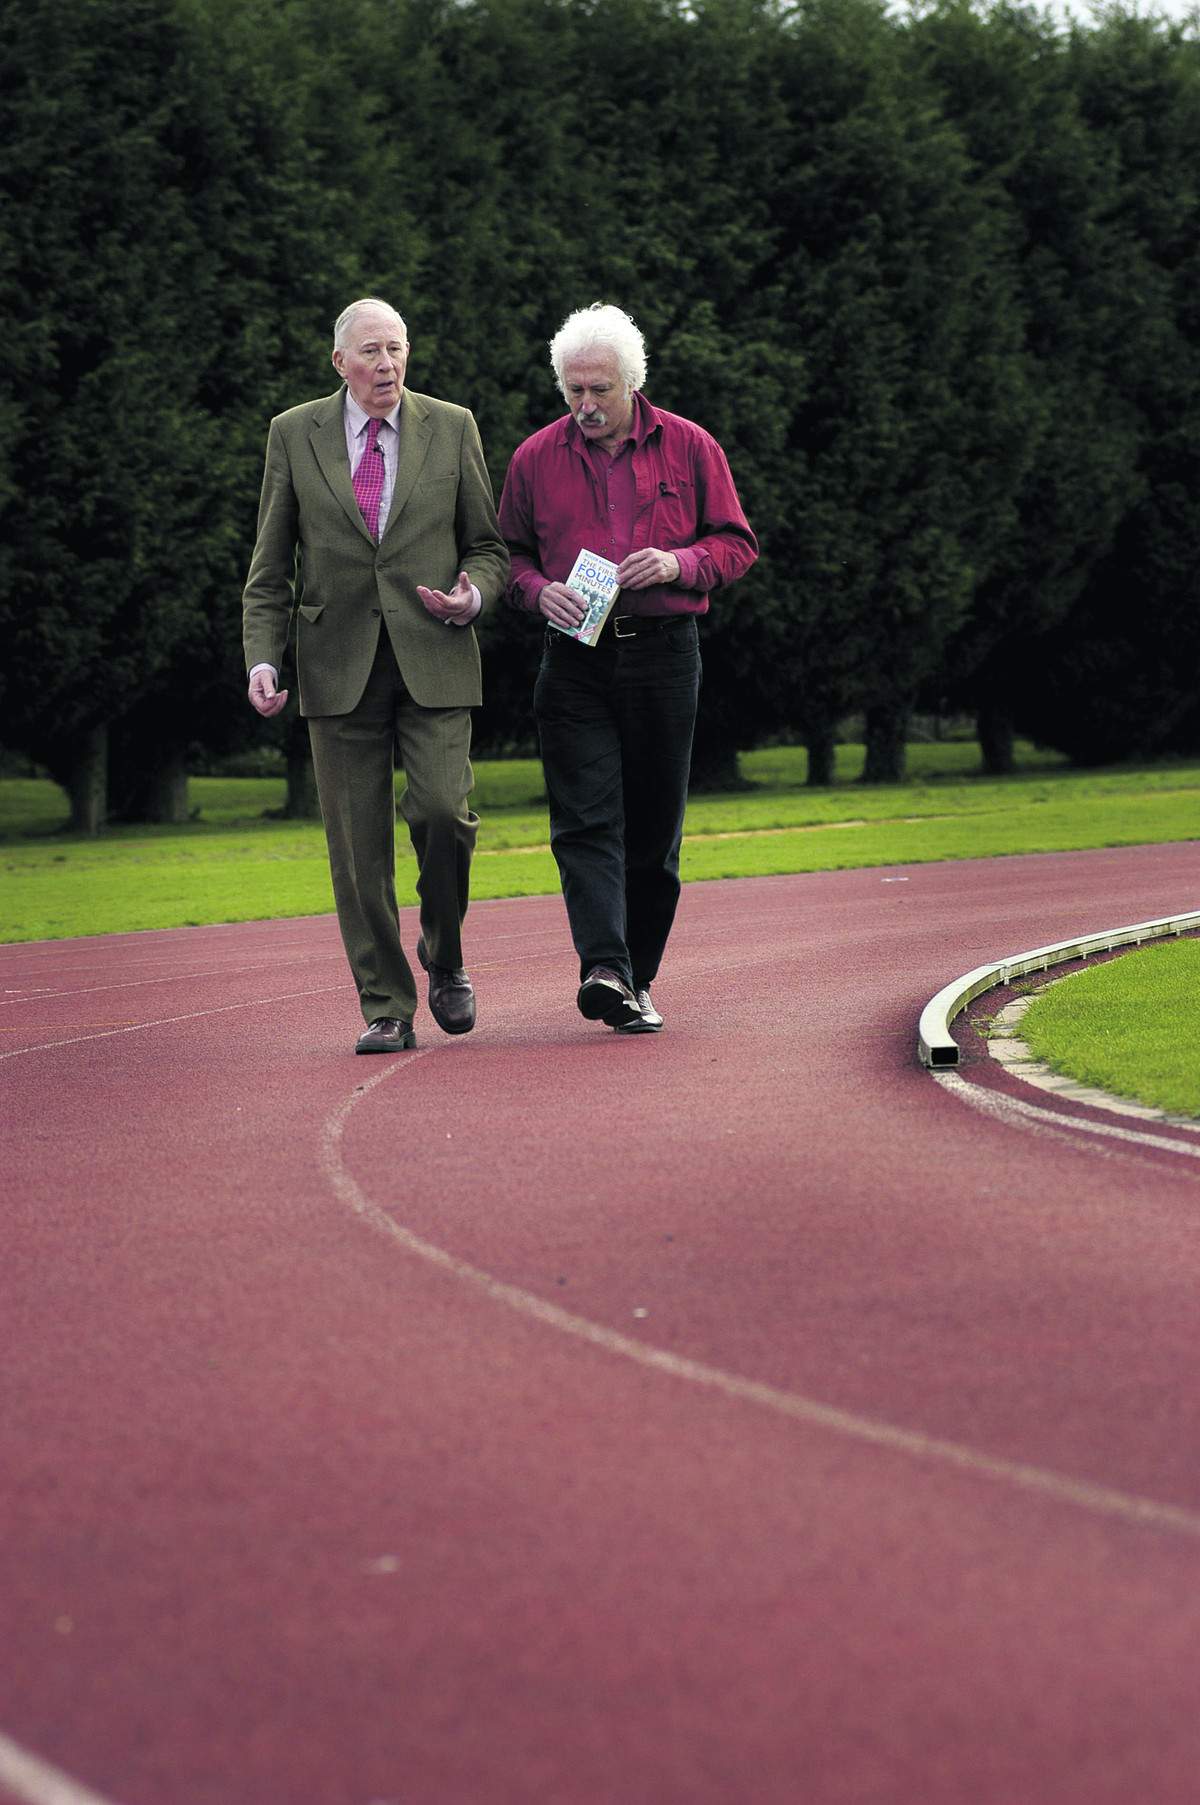 Bill Heine interviews Sir Roger Bannister at Iffley Road running track in 2004